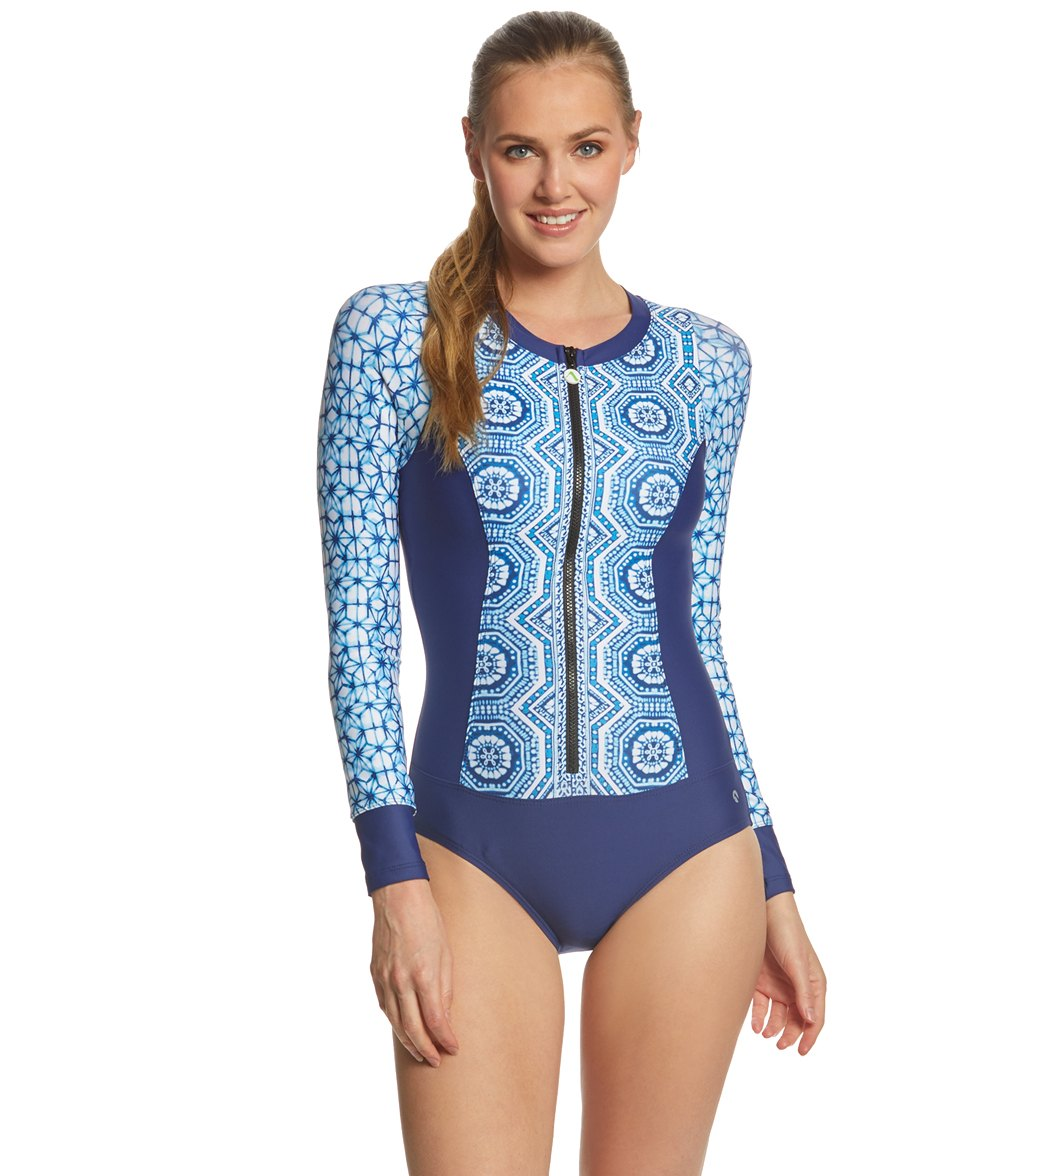 9f0fa42bc5 Next Spice Market Long Sleeve Malibu One Piece Swimsuit at SwimOutlet.com - Free  Shipping